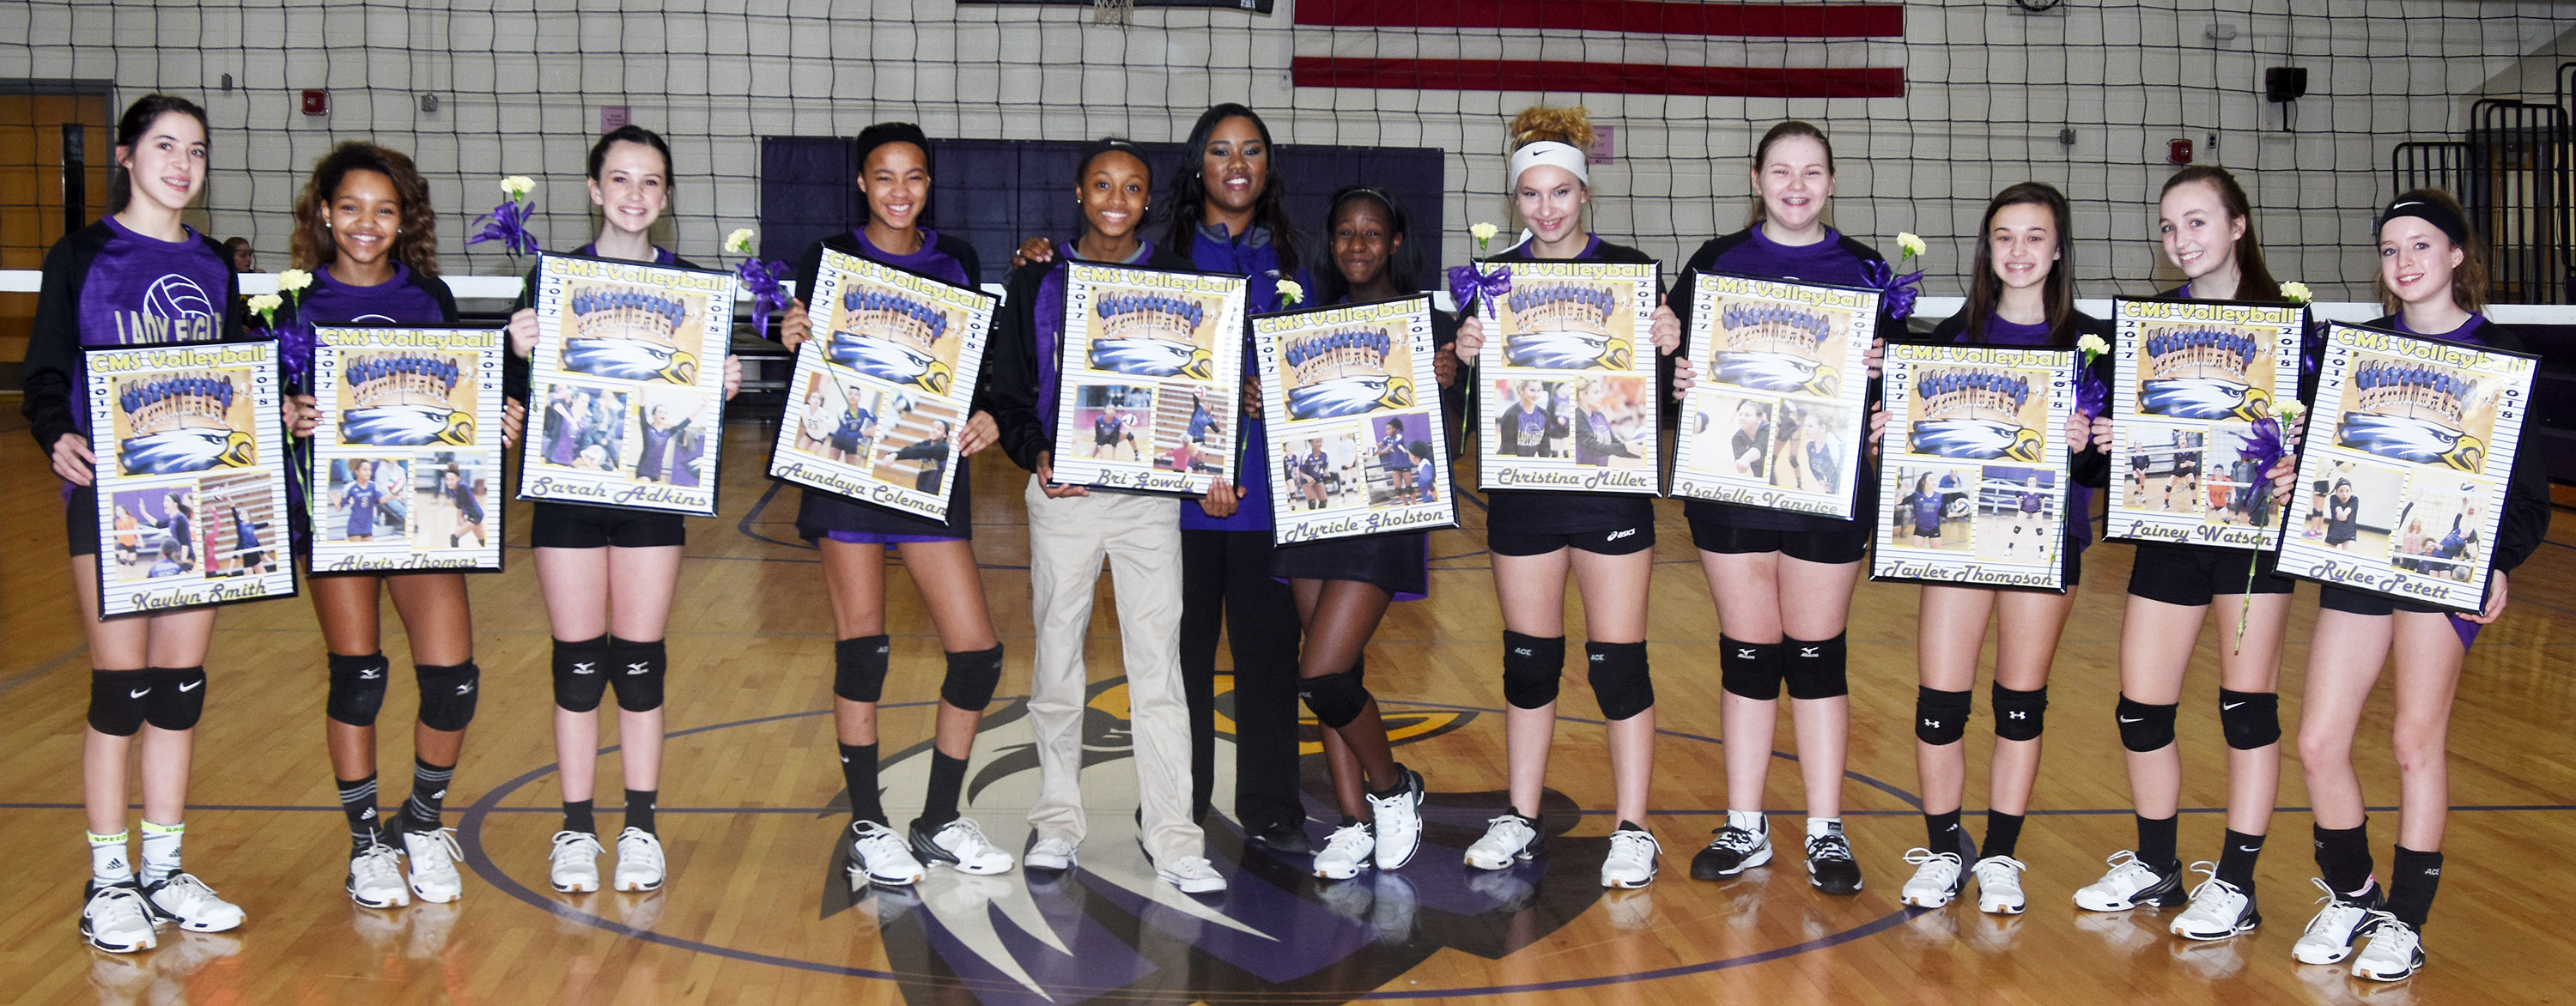 CMS eighth-grade volleyball players were honored on Tuesday, Feb. 10. They are, from left, Kaylyn Smith, Alexis Thomas, Sarah Adkins, Aundaya Coleman, Bri Gowdy, coach Shajuana Ditto, Myricle Gholston, Christina Miller, Isabella Vannice, Tayler Thompson, Lainey Watson and Rylee Petett.